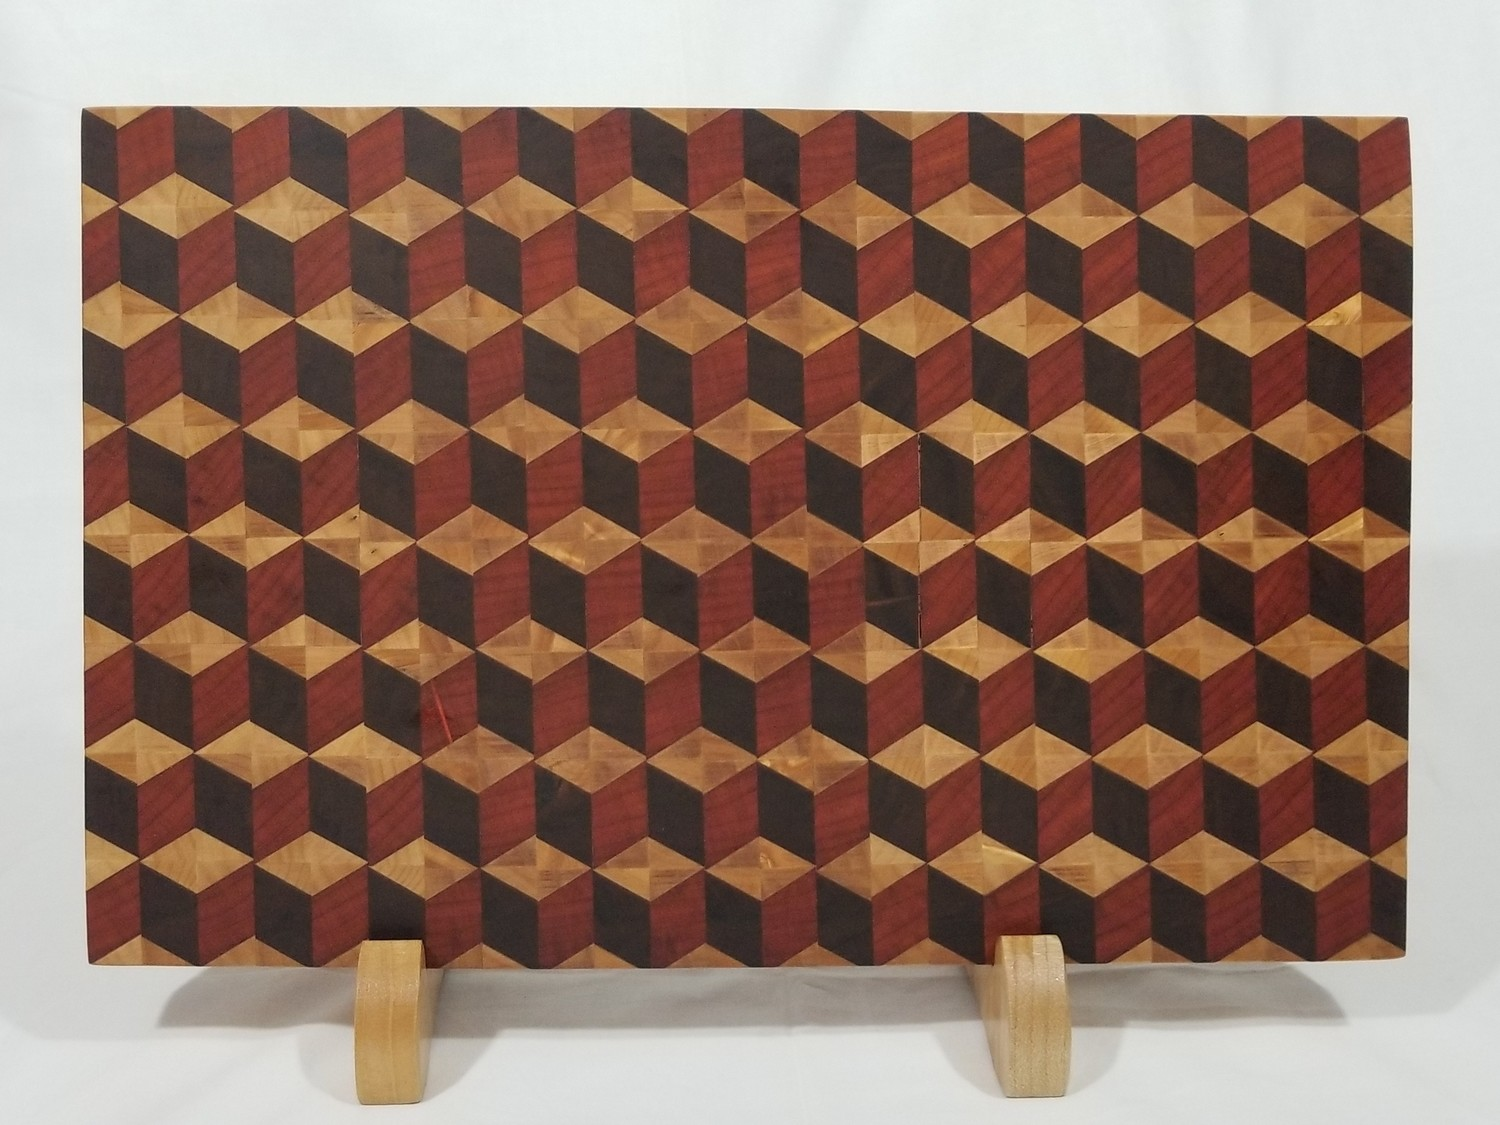 3D Cutting Boards - Charcuterie/Cheese Boards